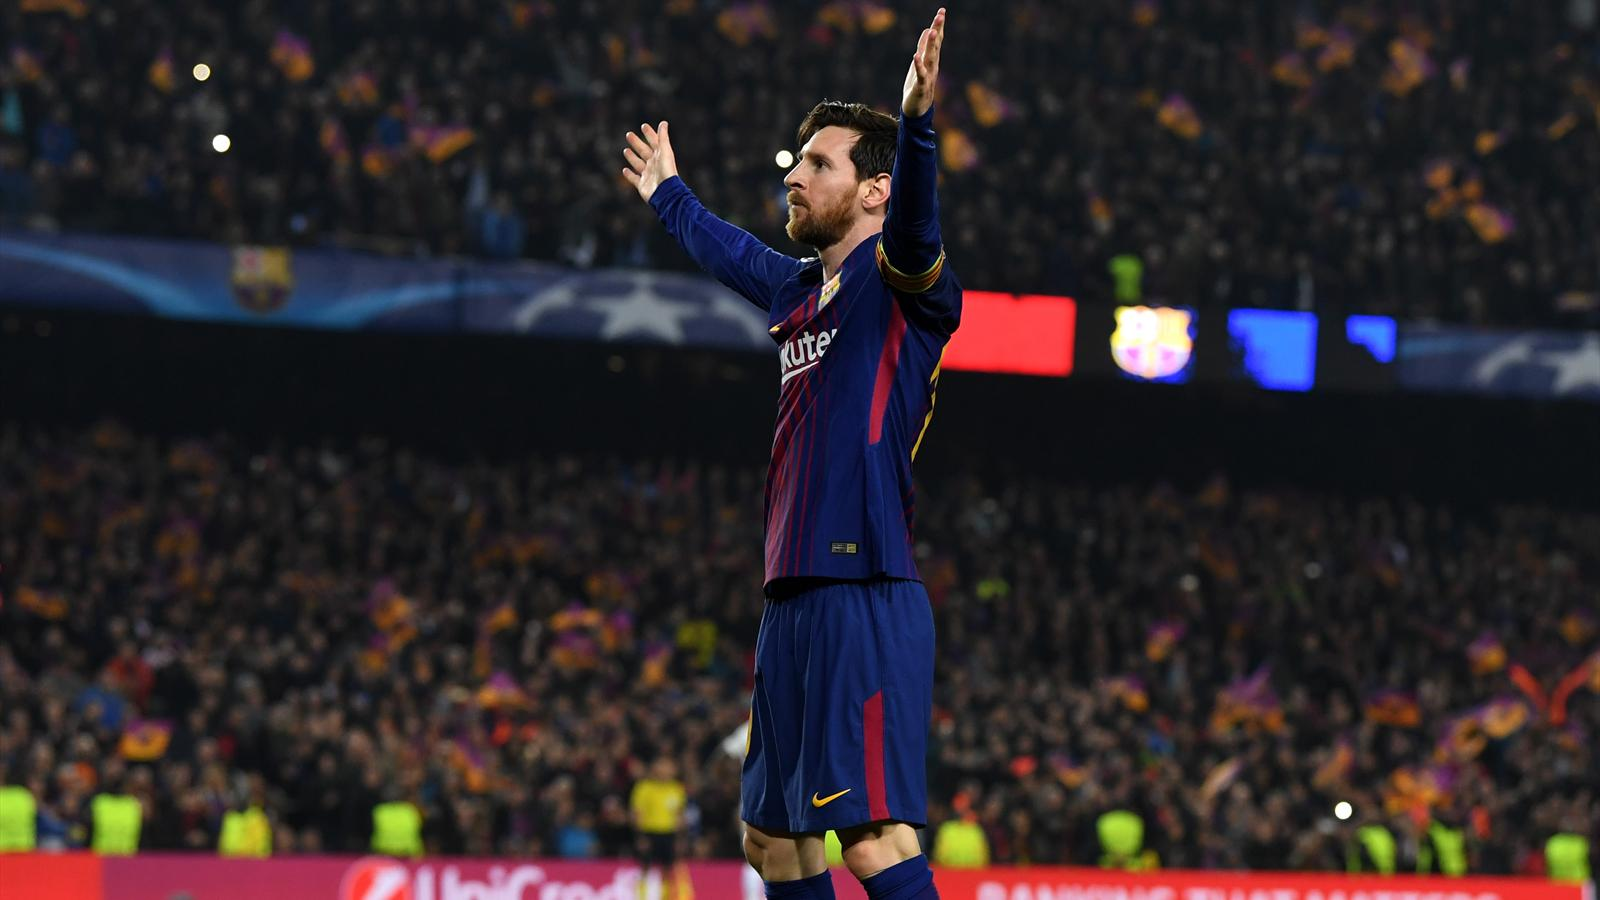 Ansu Fati and Lionel Messi scored in each half of the match to hand the La Liga Champions a much-needed victory to stay at the top of the table